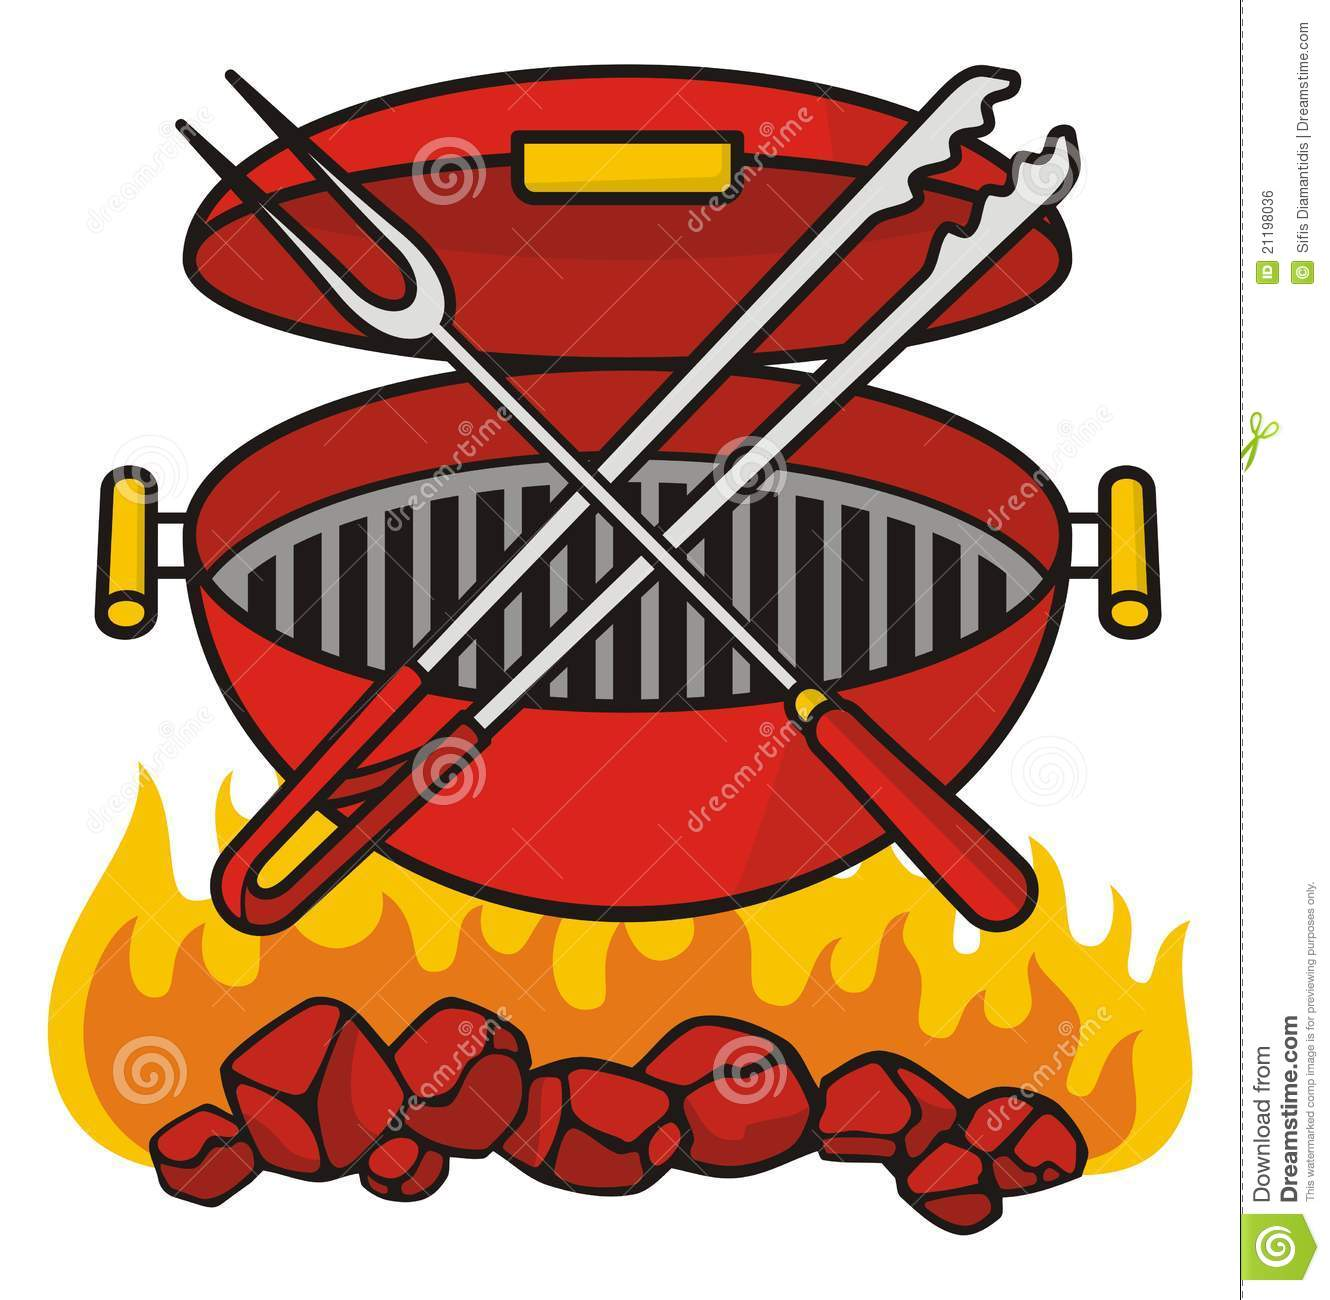 Grilgrill